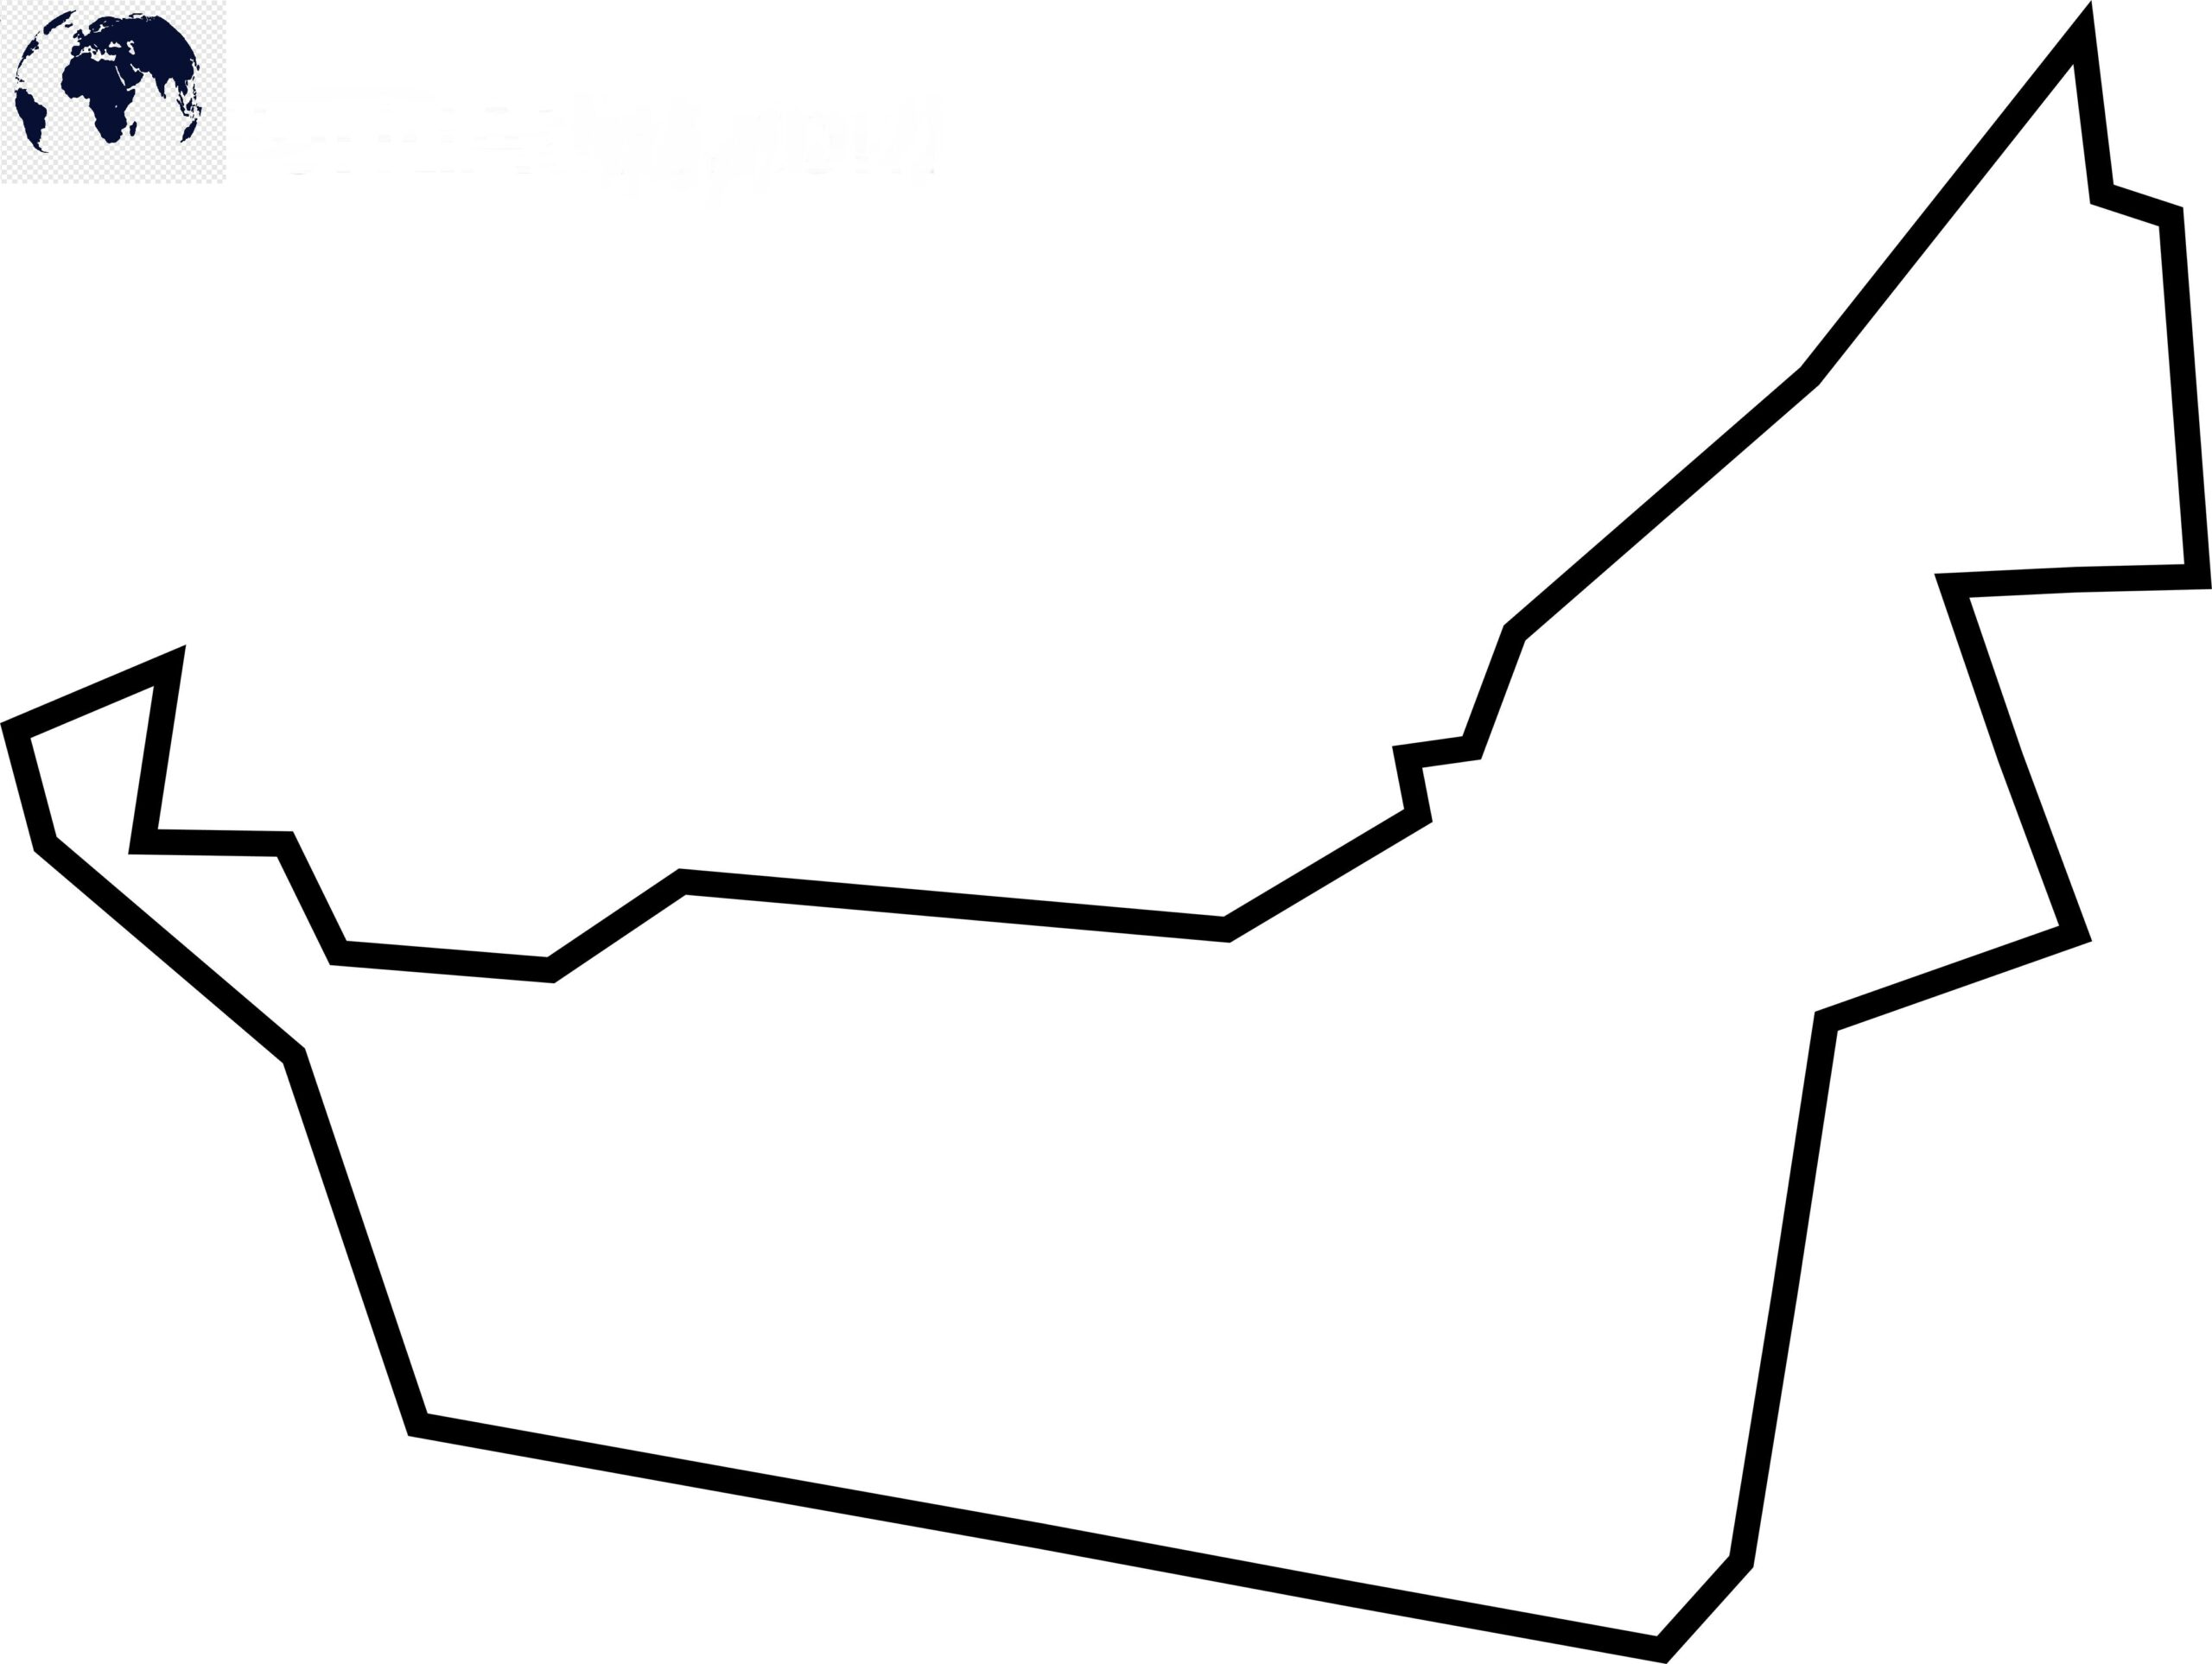 Blank Map of United Arab Emirates - Outline